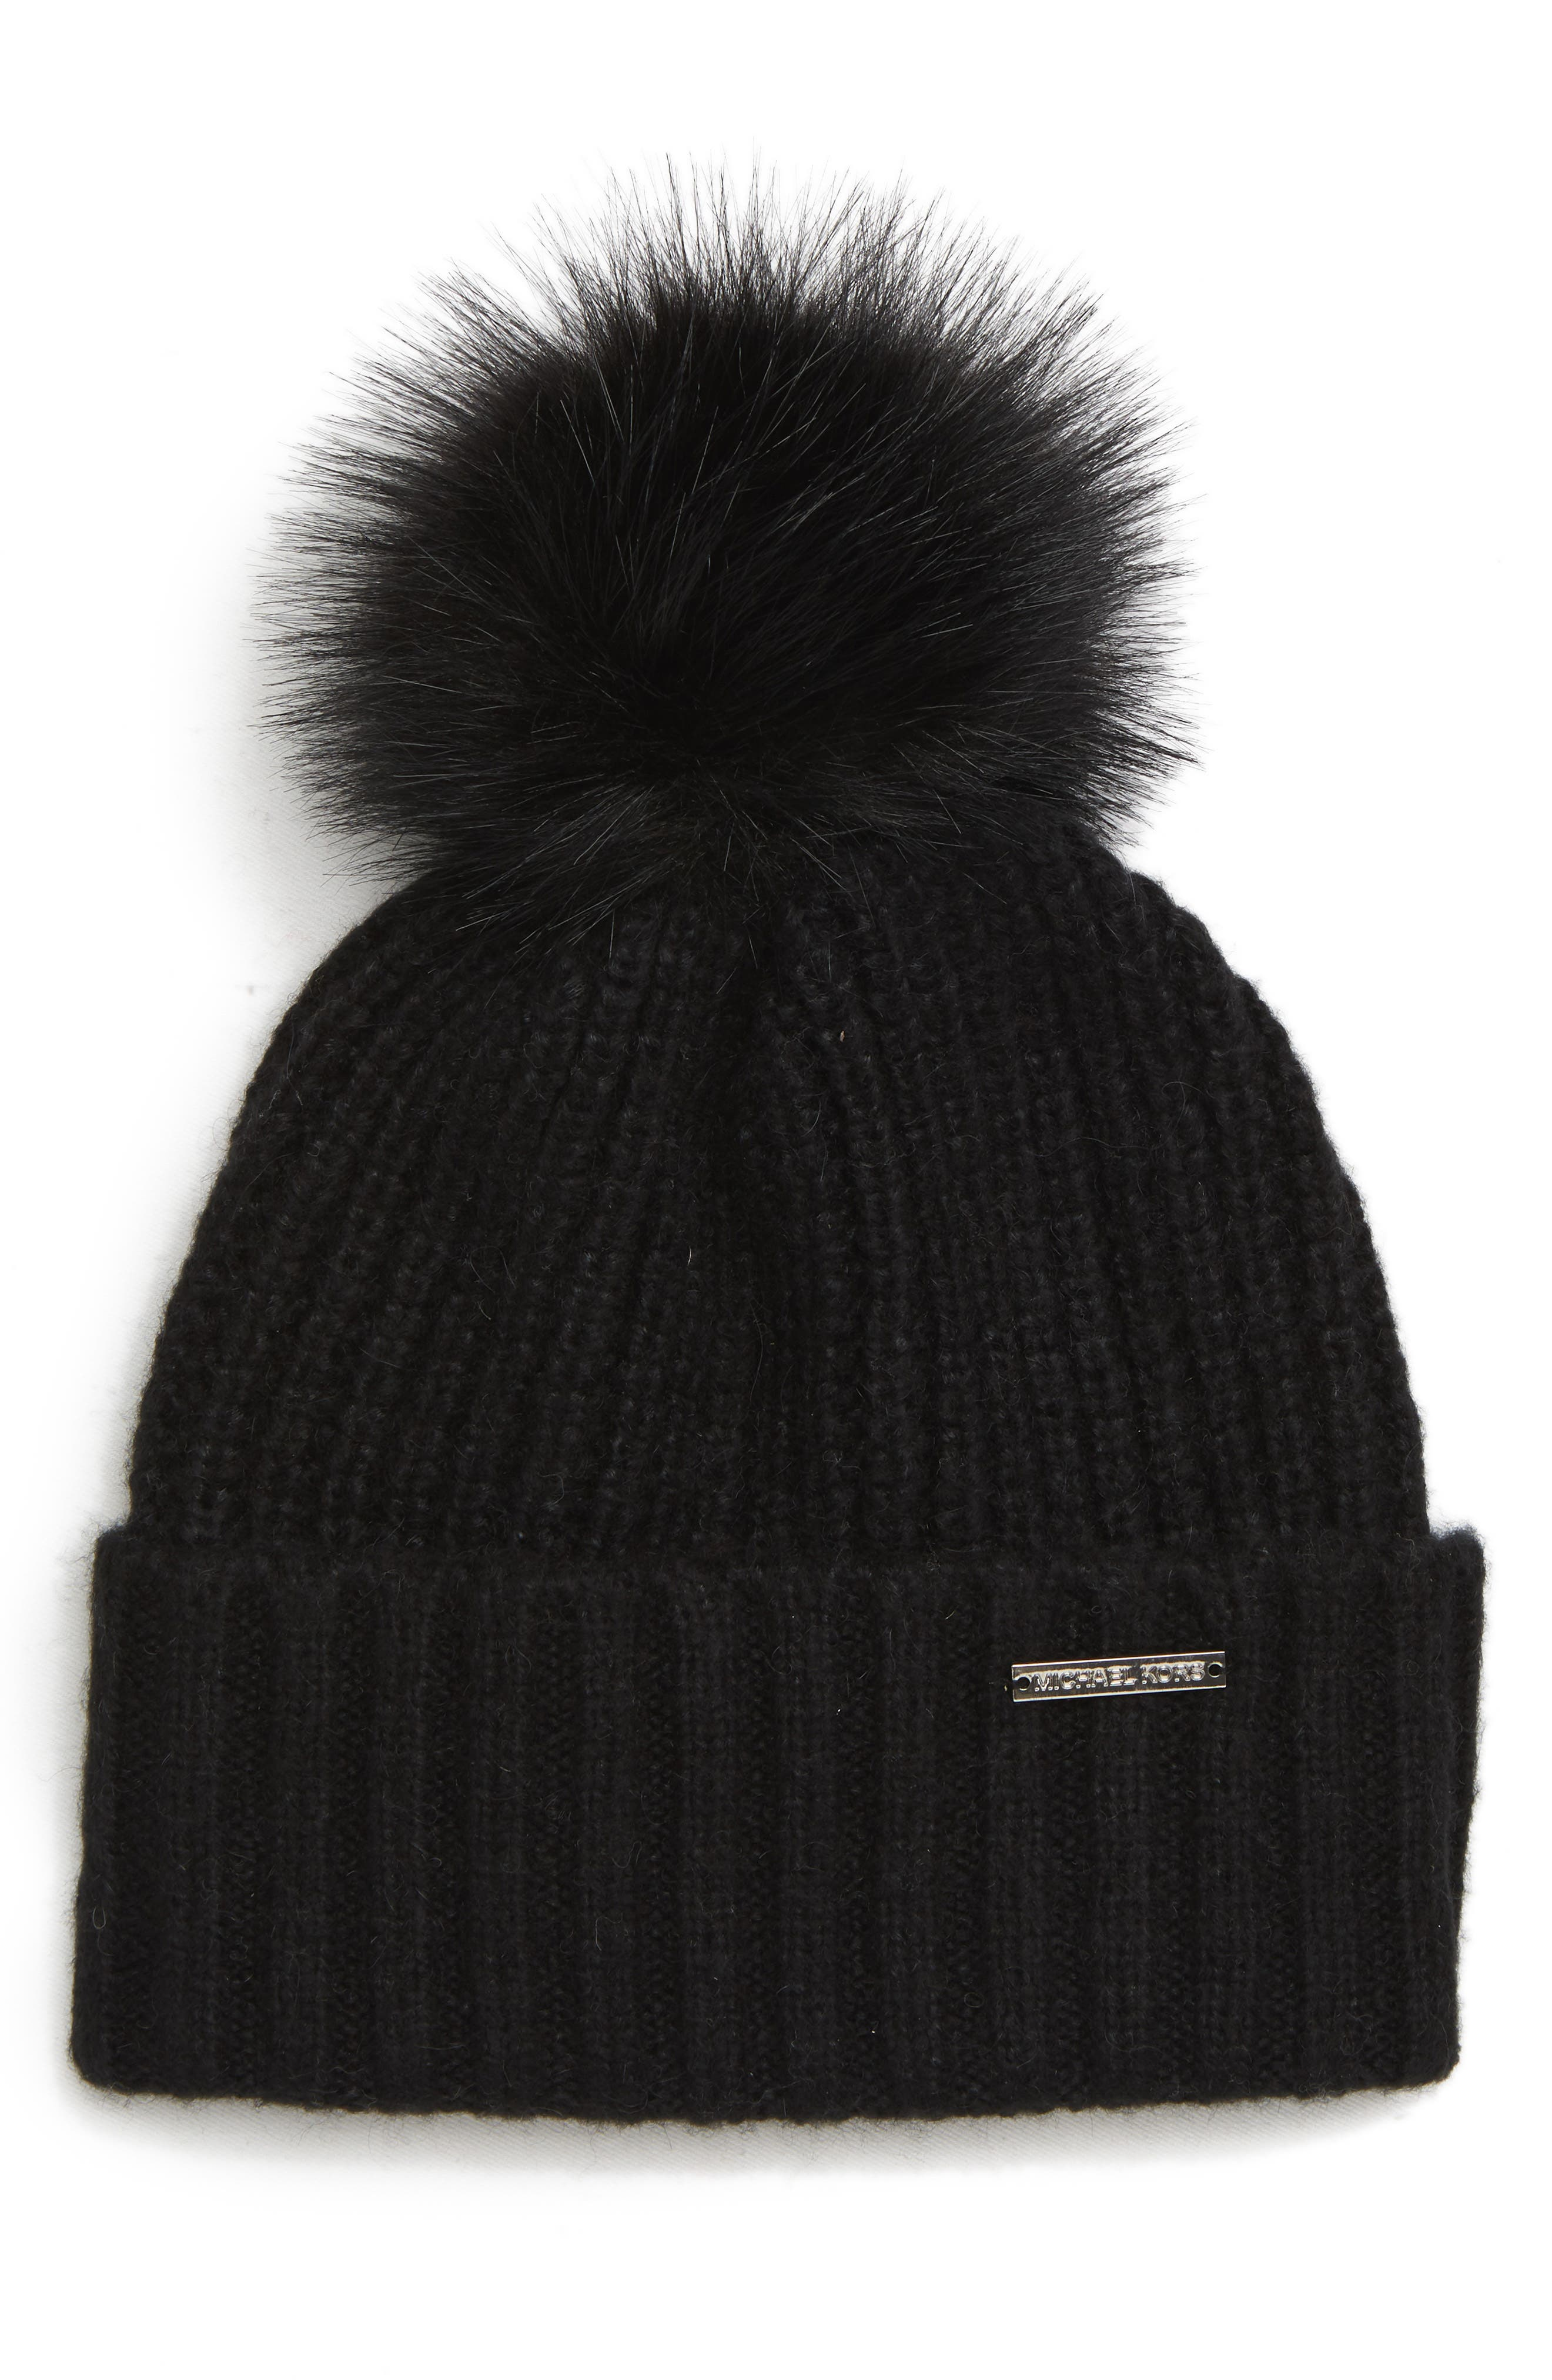 Thermal Stitch Hat,                             Main thumbnail 1, color,                             001